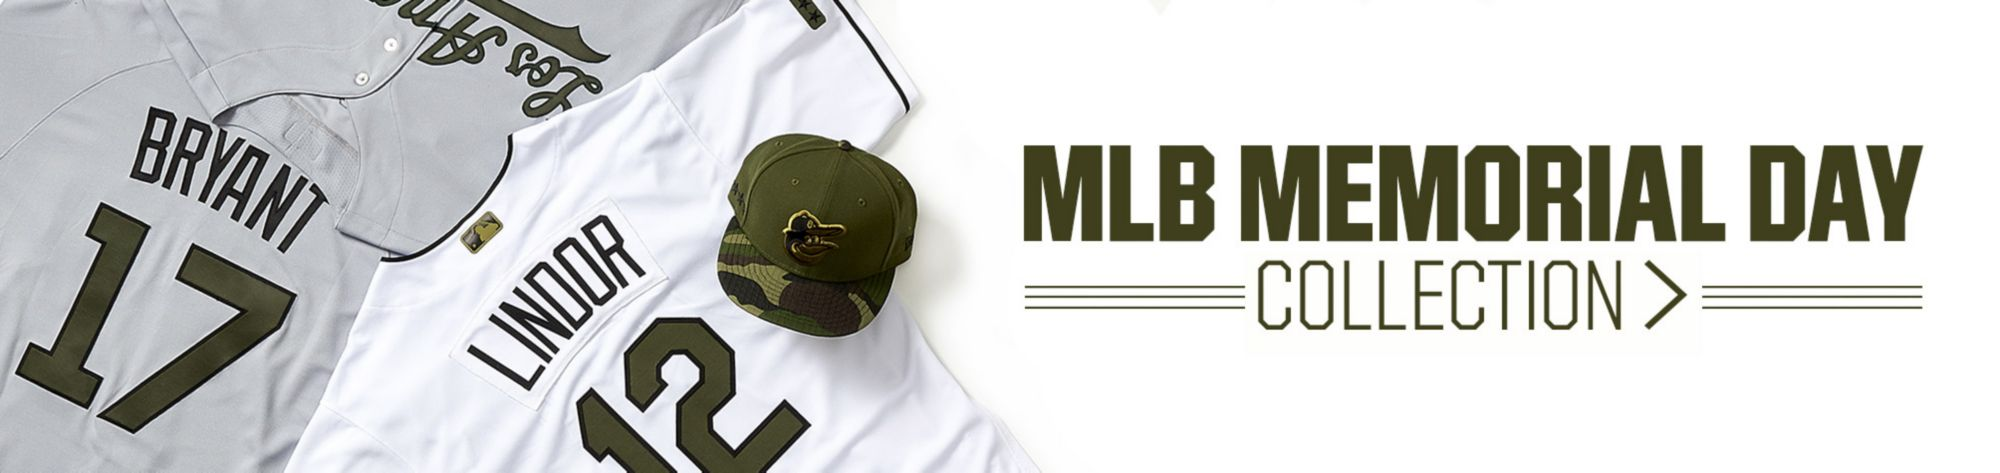 Shop MLB Memorial Day Collection